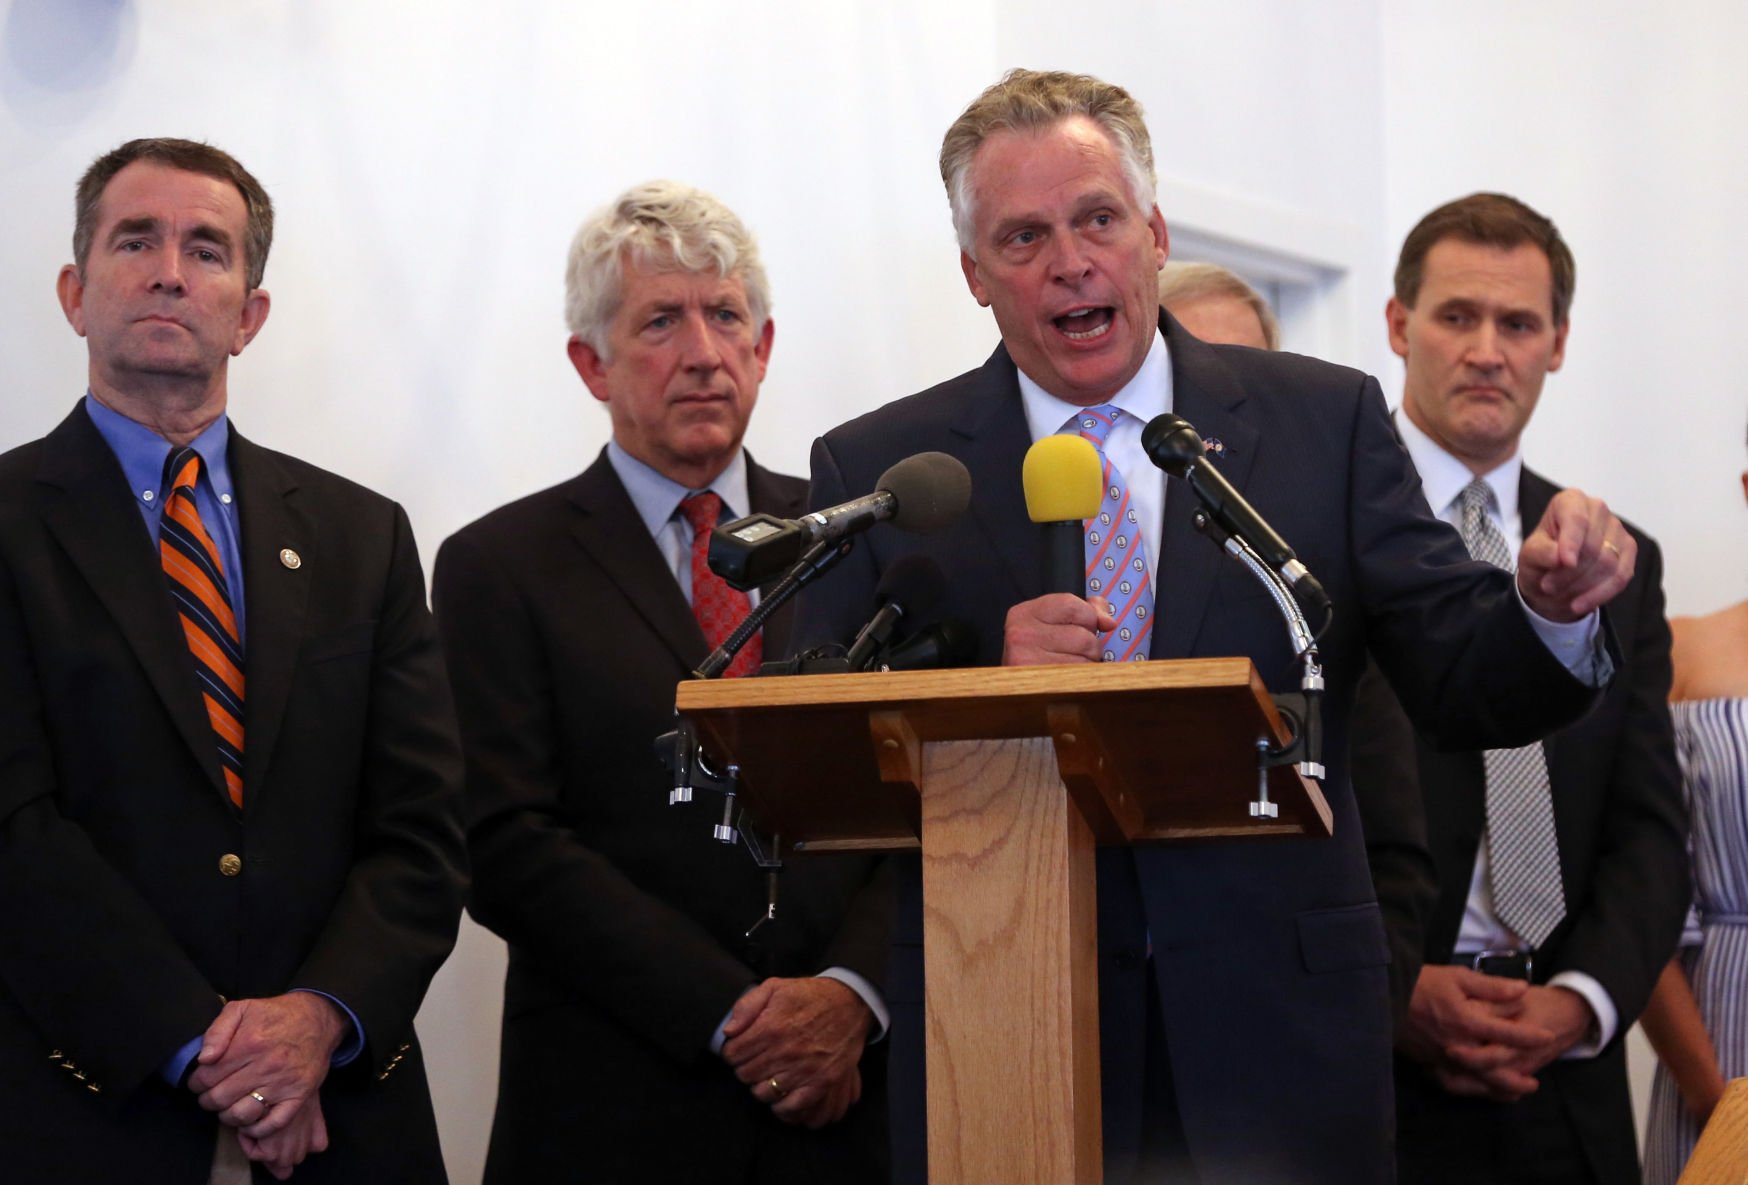 'We must learn from this,' McAuliffe says in wake of Charlottesville violence